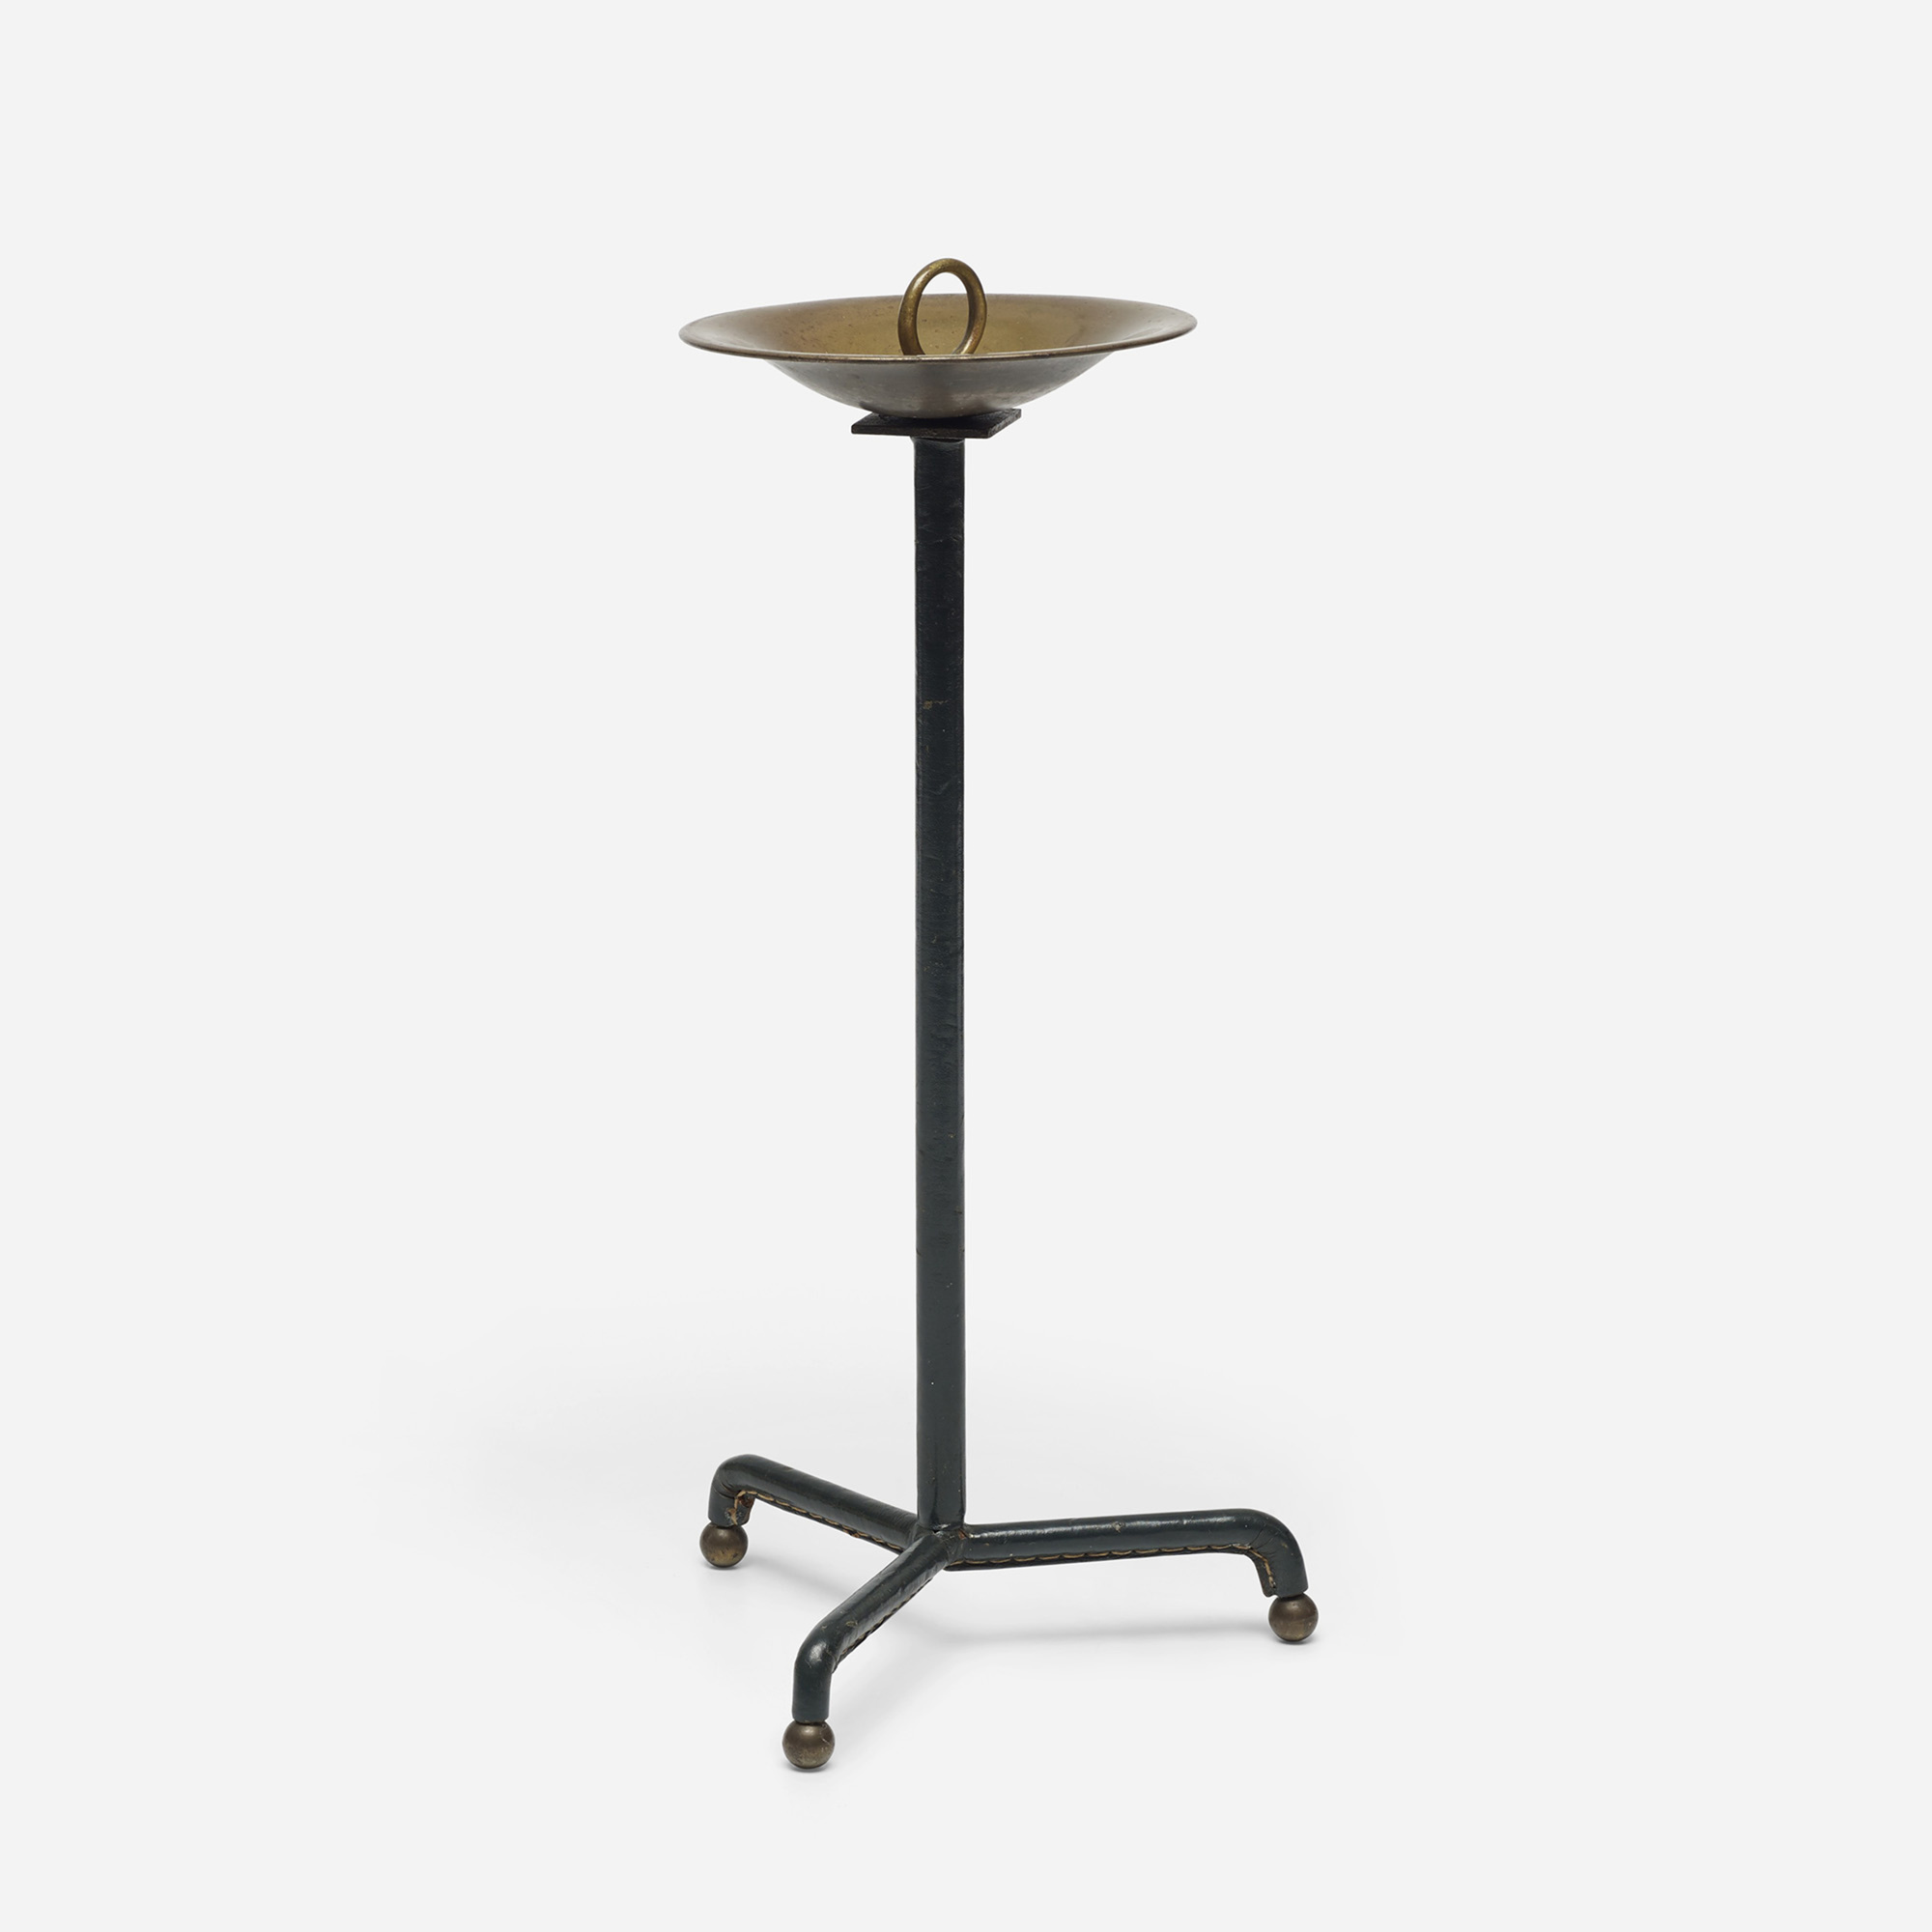 107: Jacques Adnet, attribution / ashtray (1 of 3)